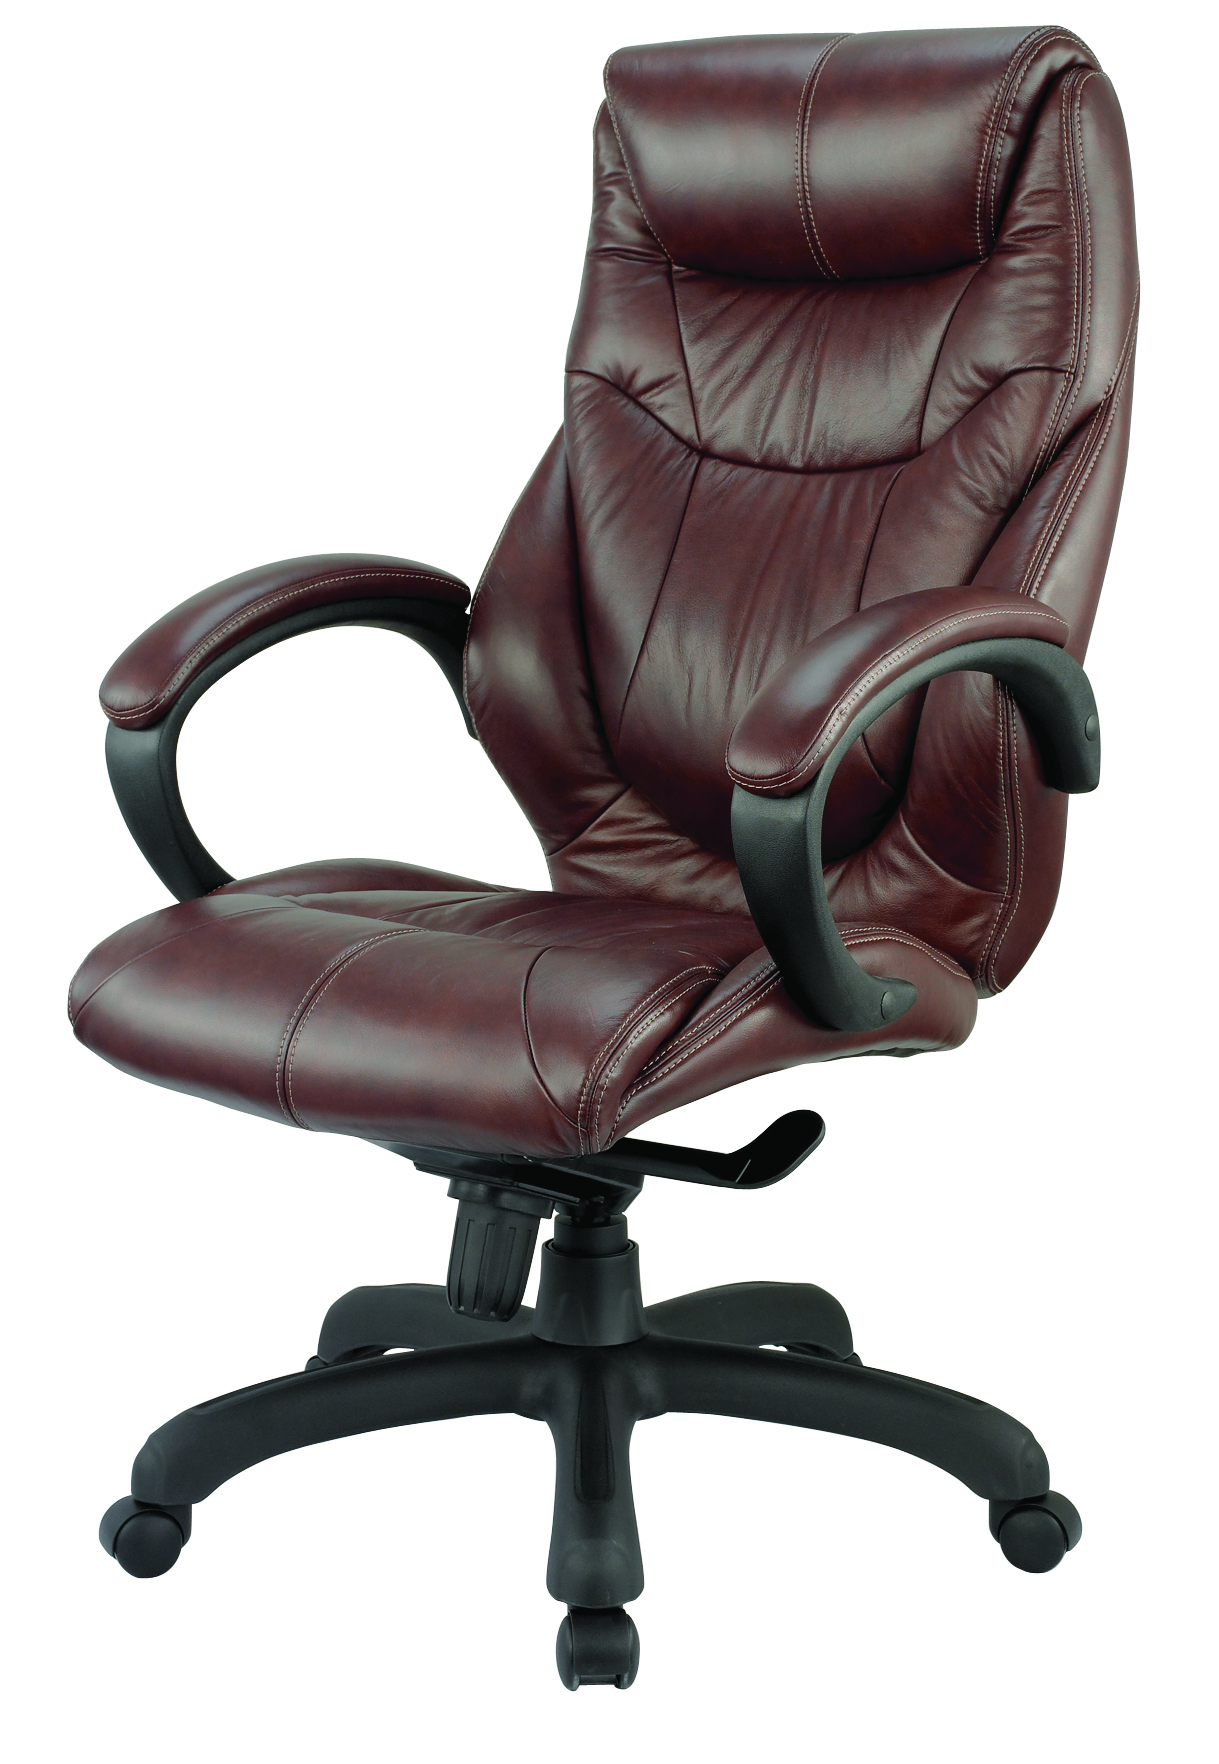 Leather Office Chairs Office Chairs Executive Office Chairs Leather